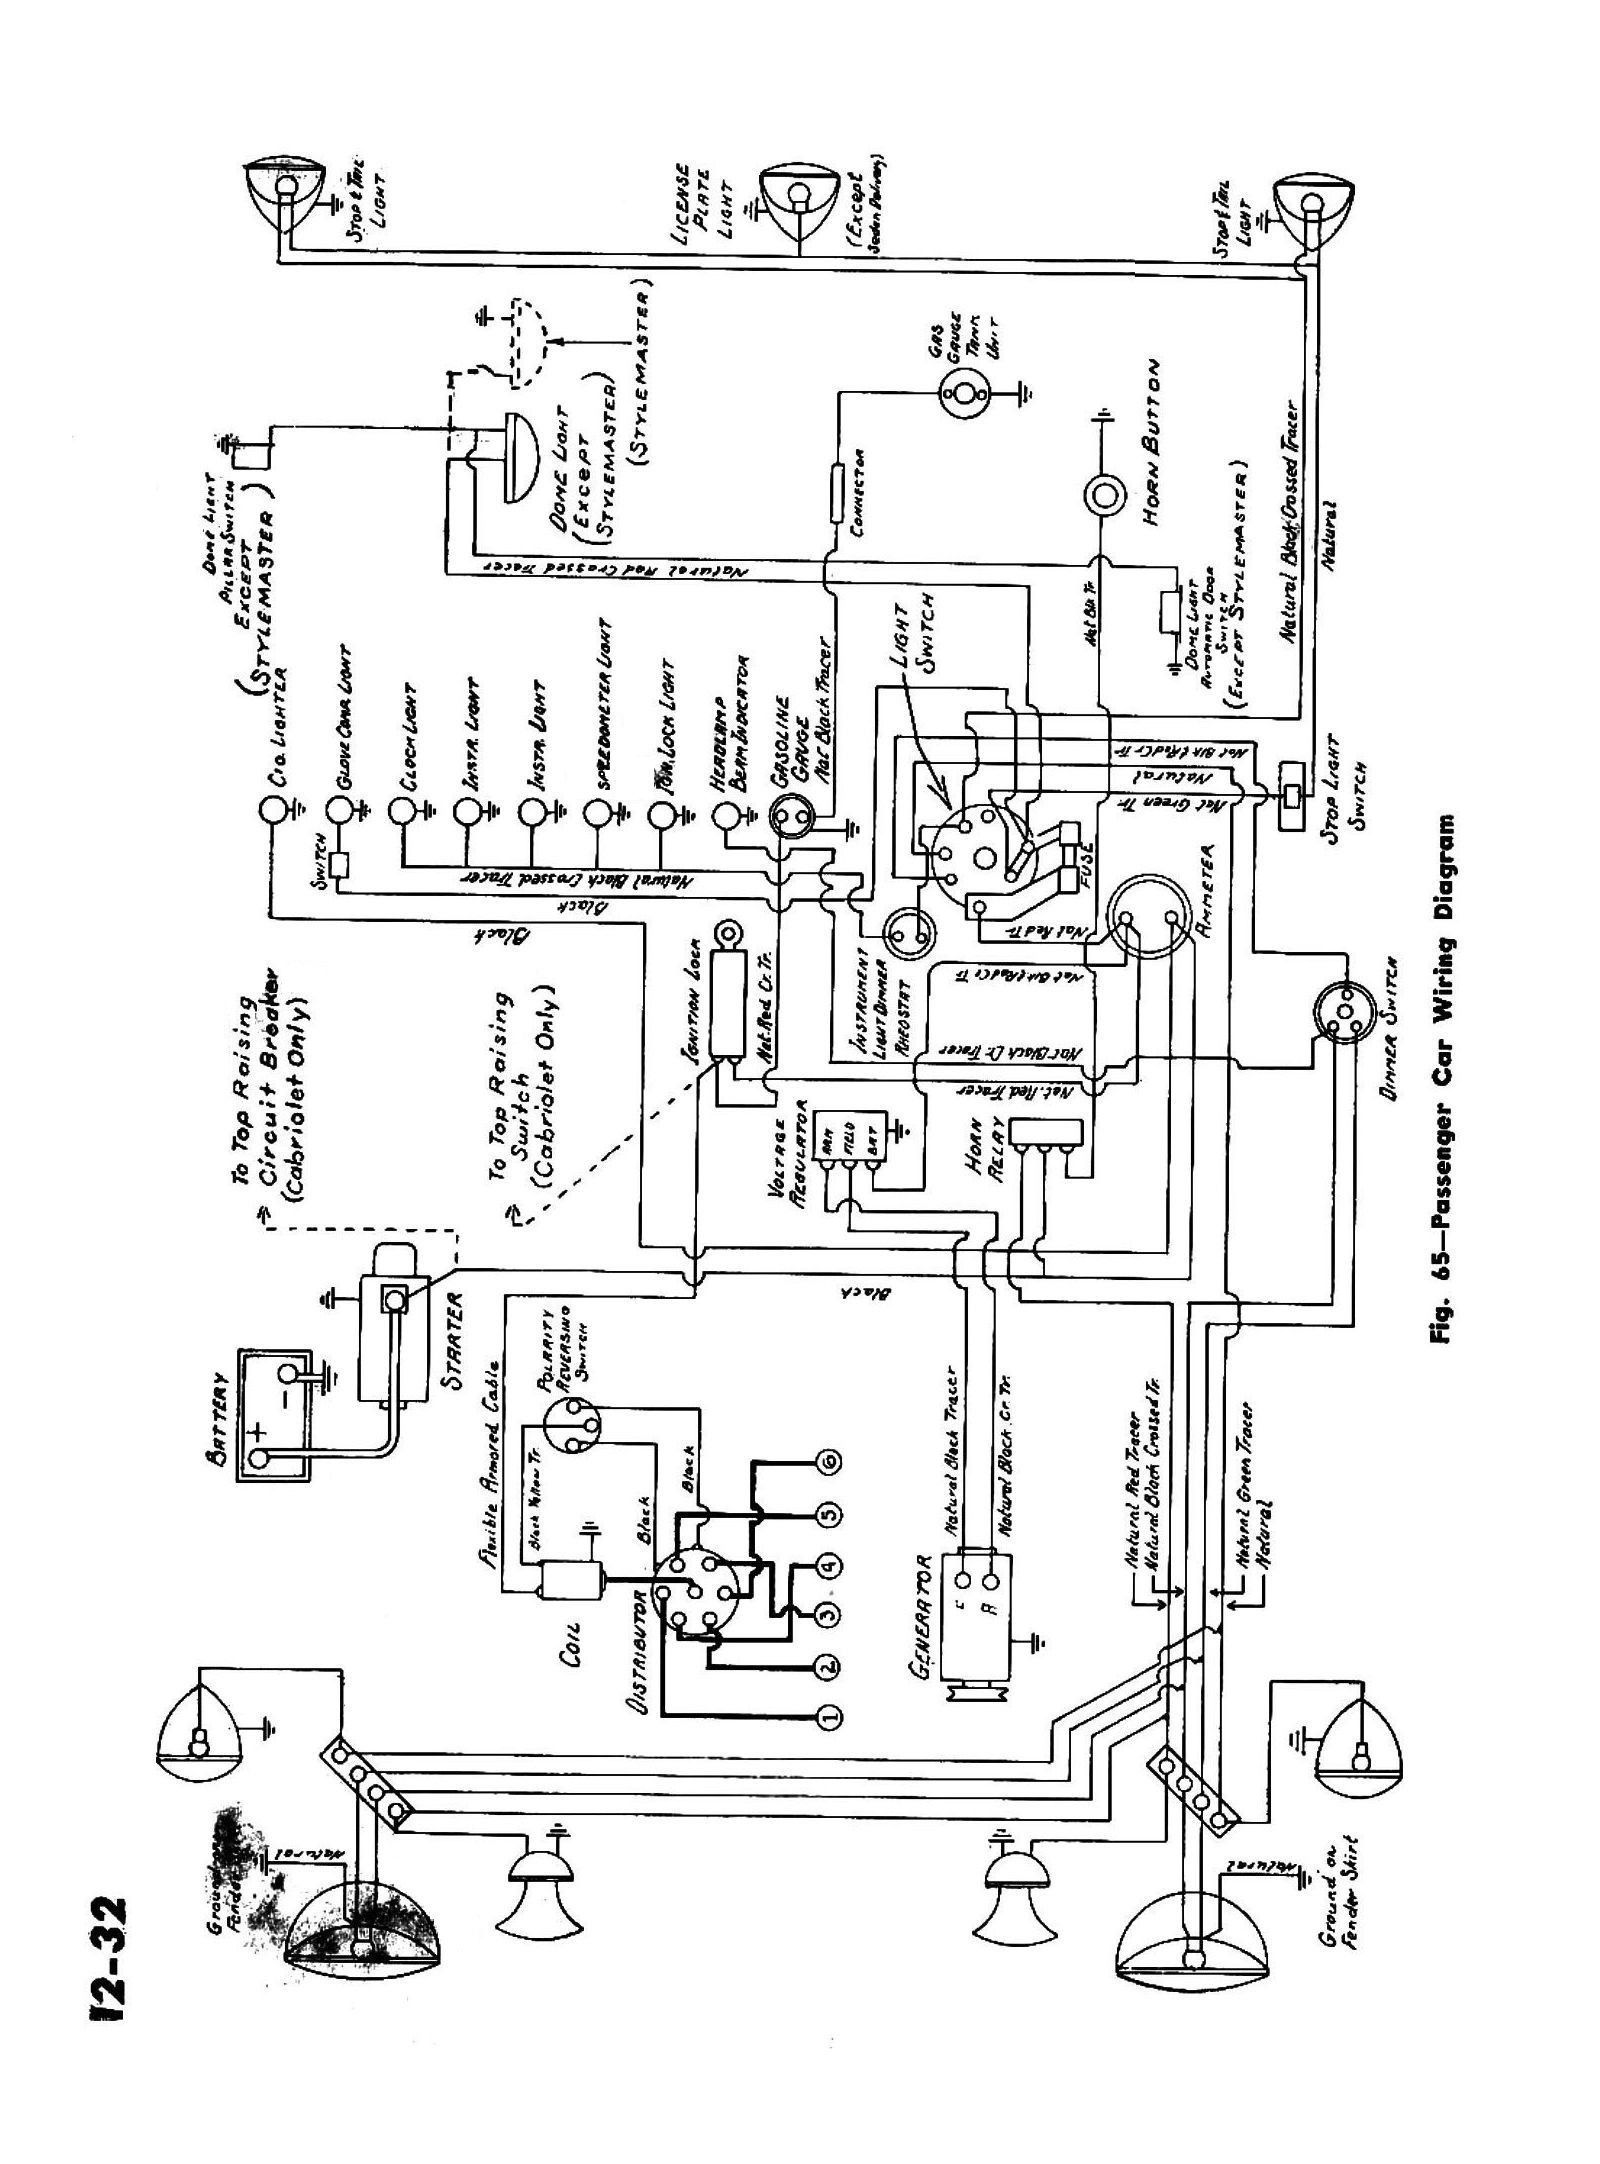 New Understanding Automotive Wiring Diagram Electricidad